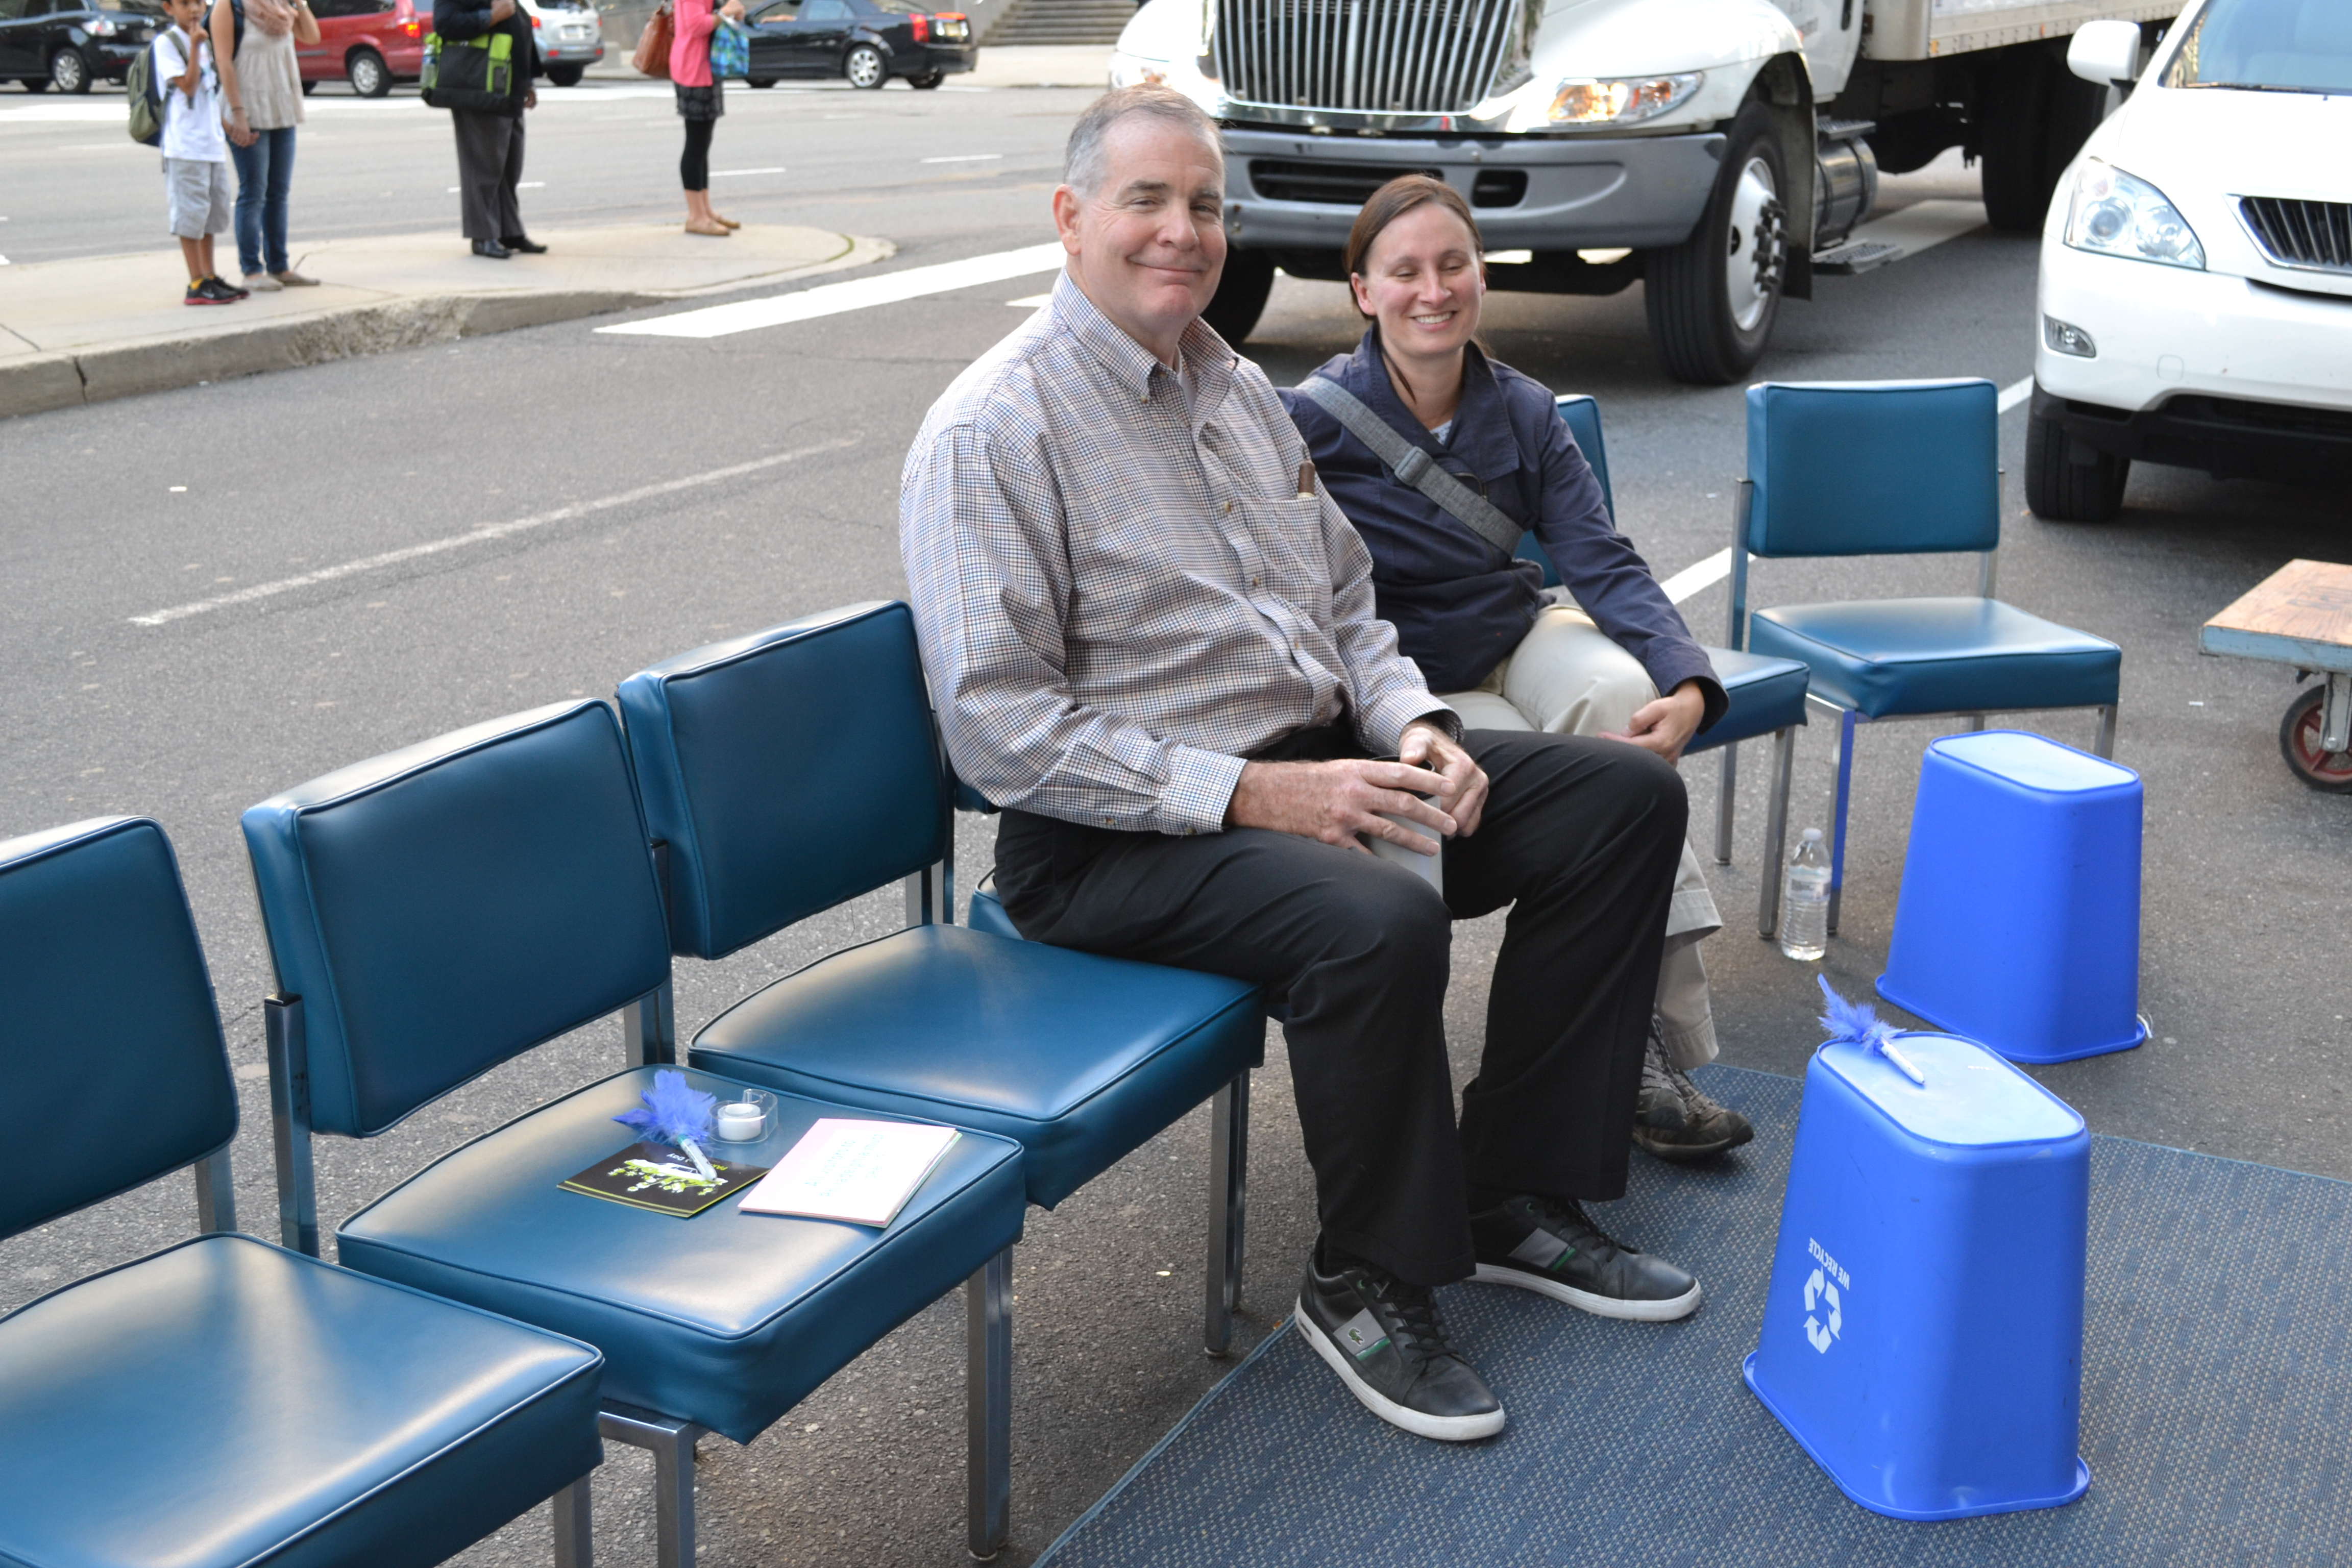 Park(ing) Day: Mayor's Office of Transportation and Utilities